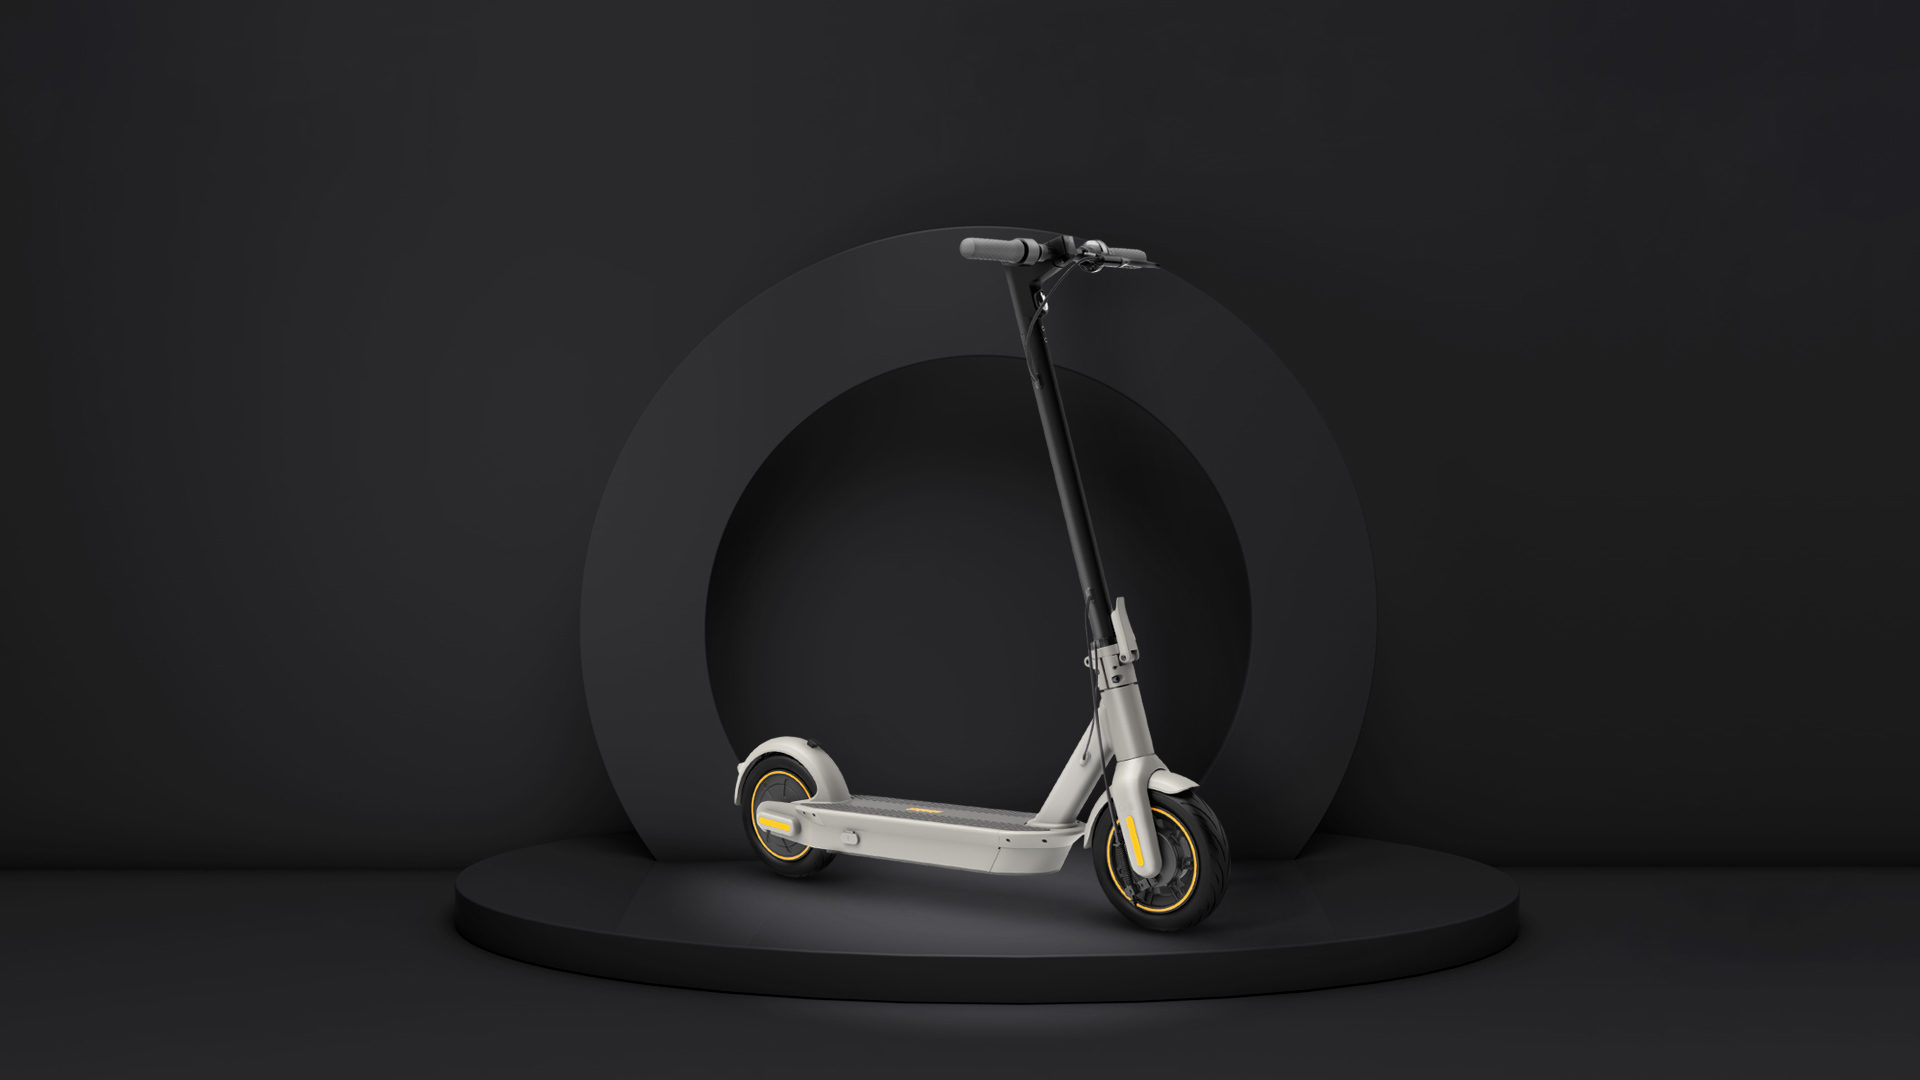 New Ninebot Kickscooter Max G30le Powered By Segway